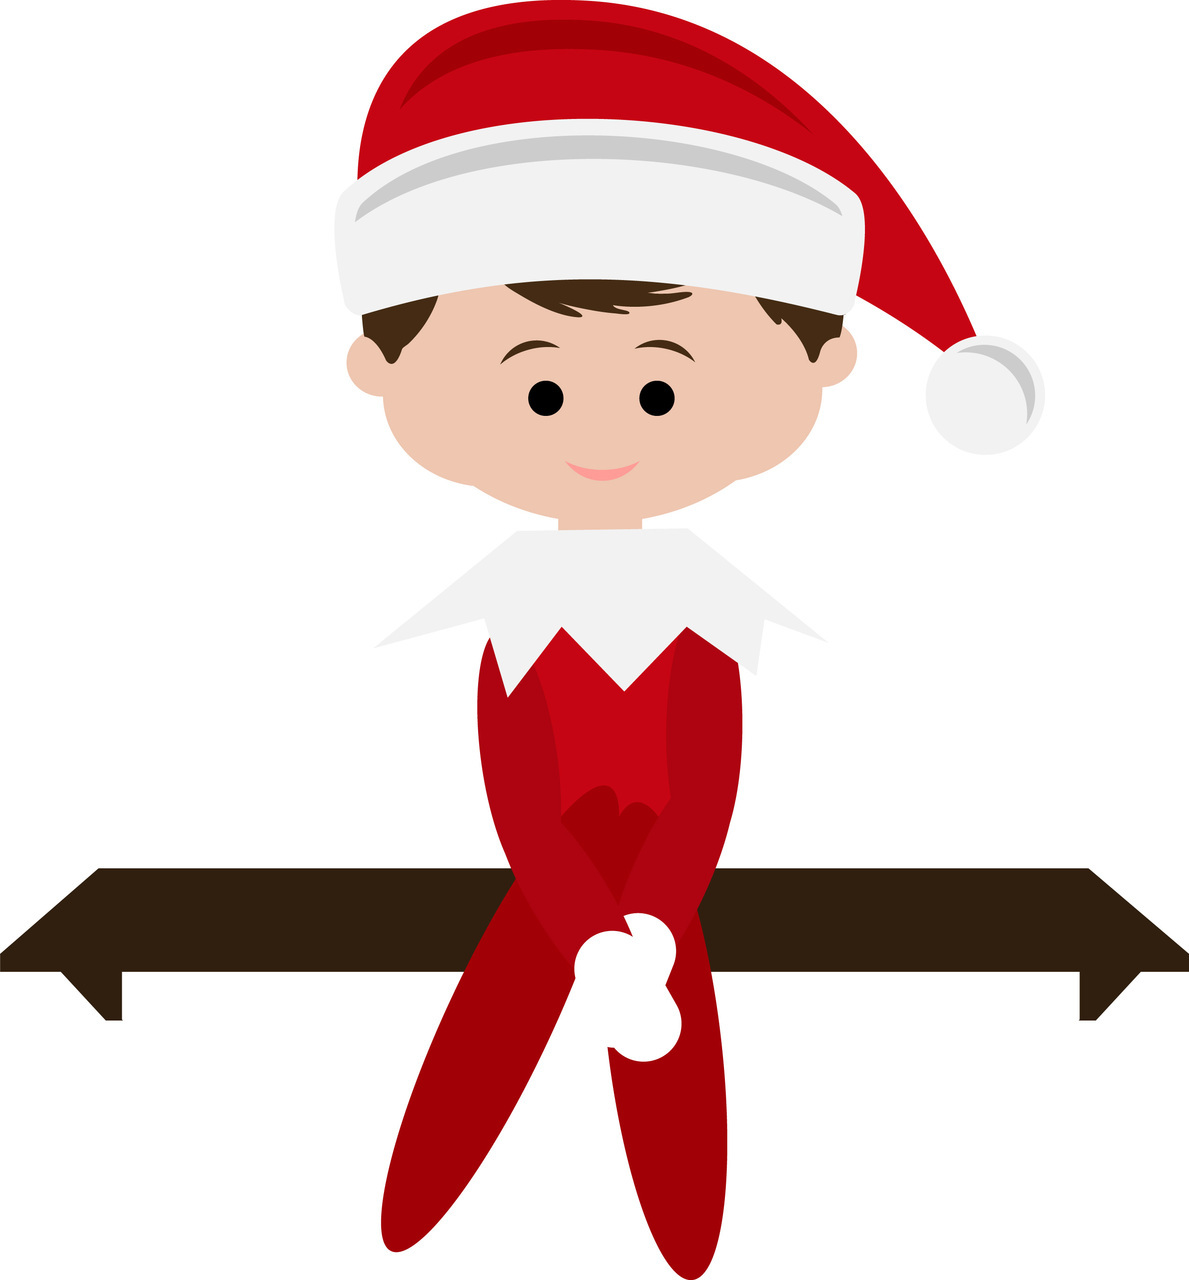 Clip Art Elf On The Shelf Clipart elf on the shelf clipart kid christmas pictures wallpapers9